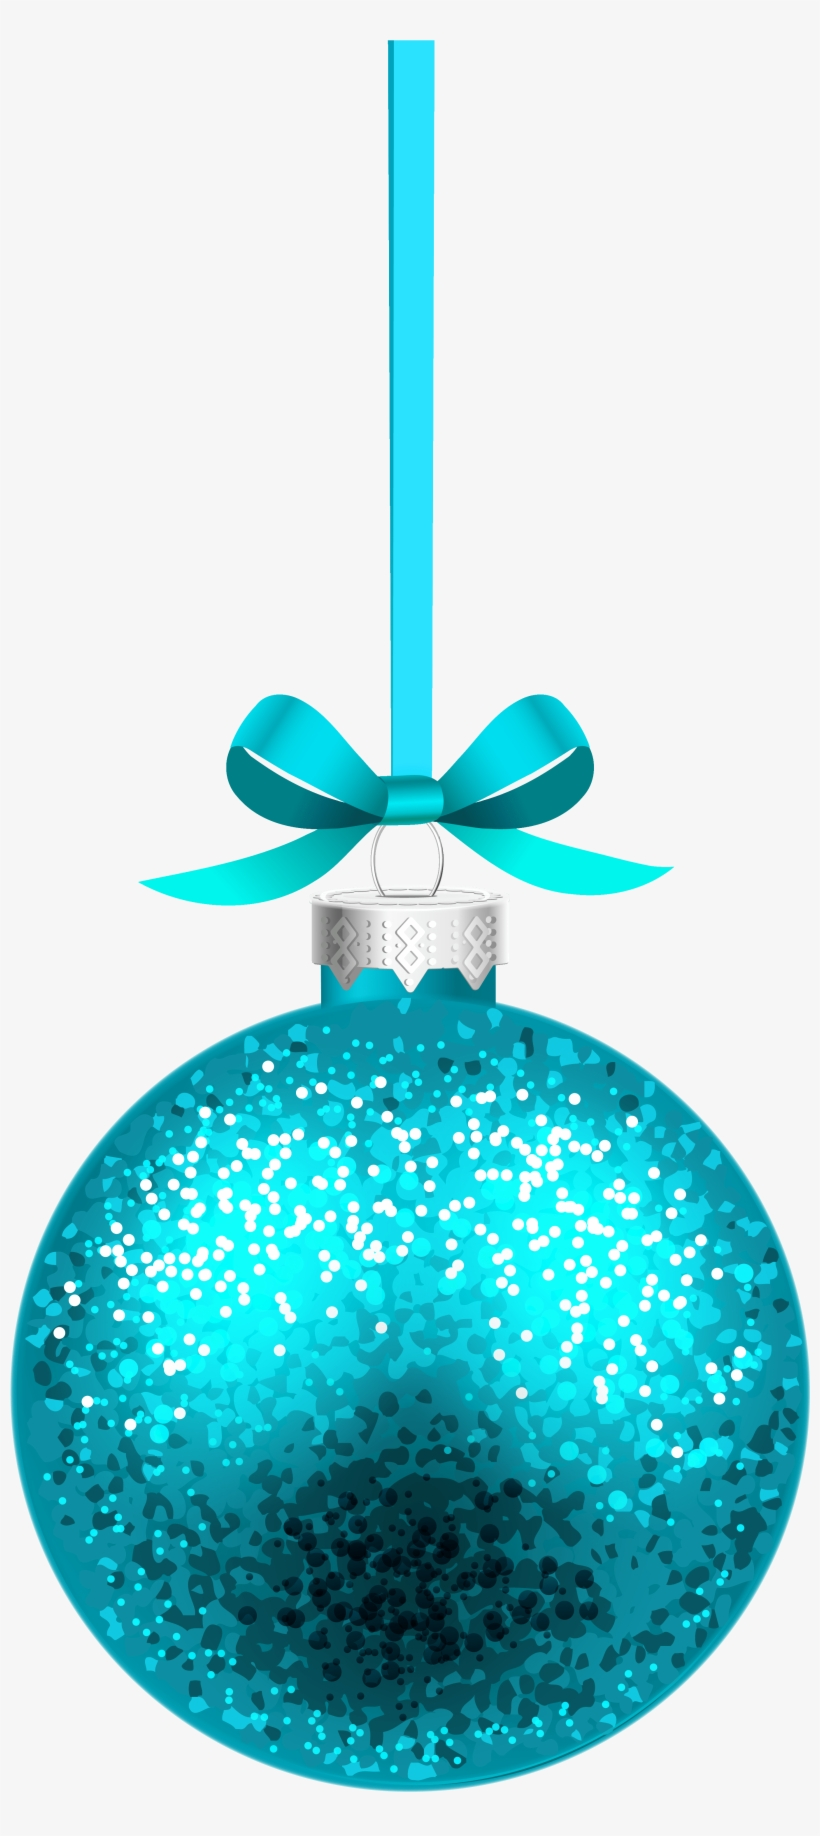 Blue Christmas Hanging Ball Png Clipart Image.